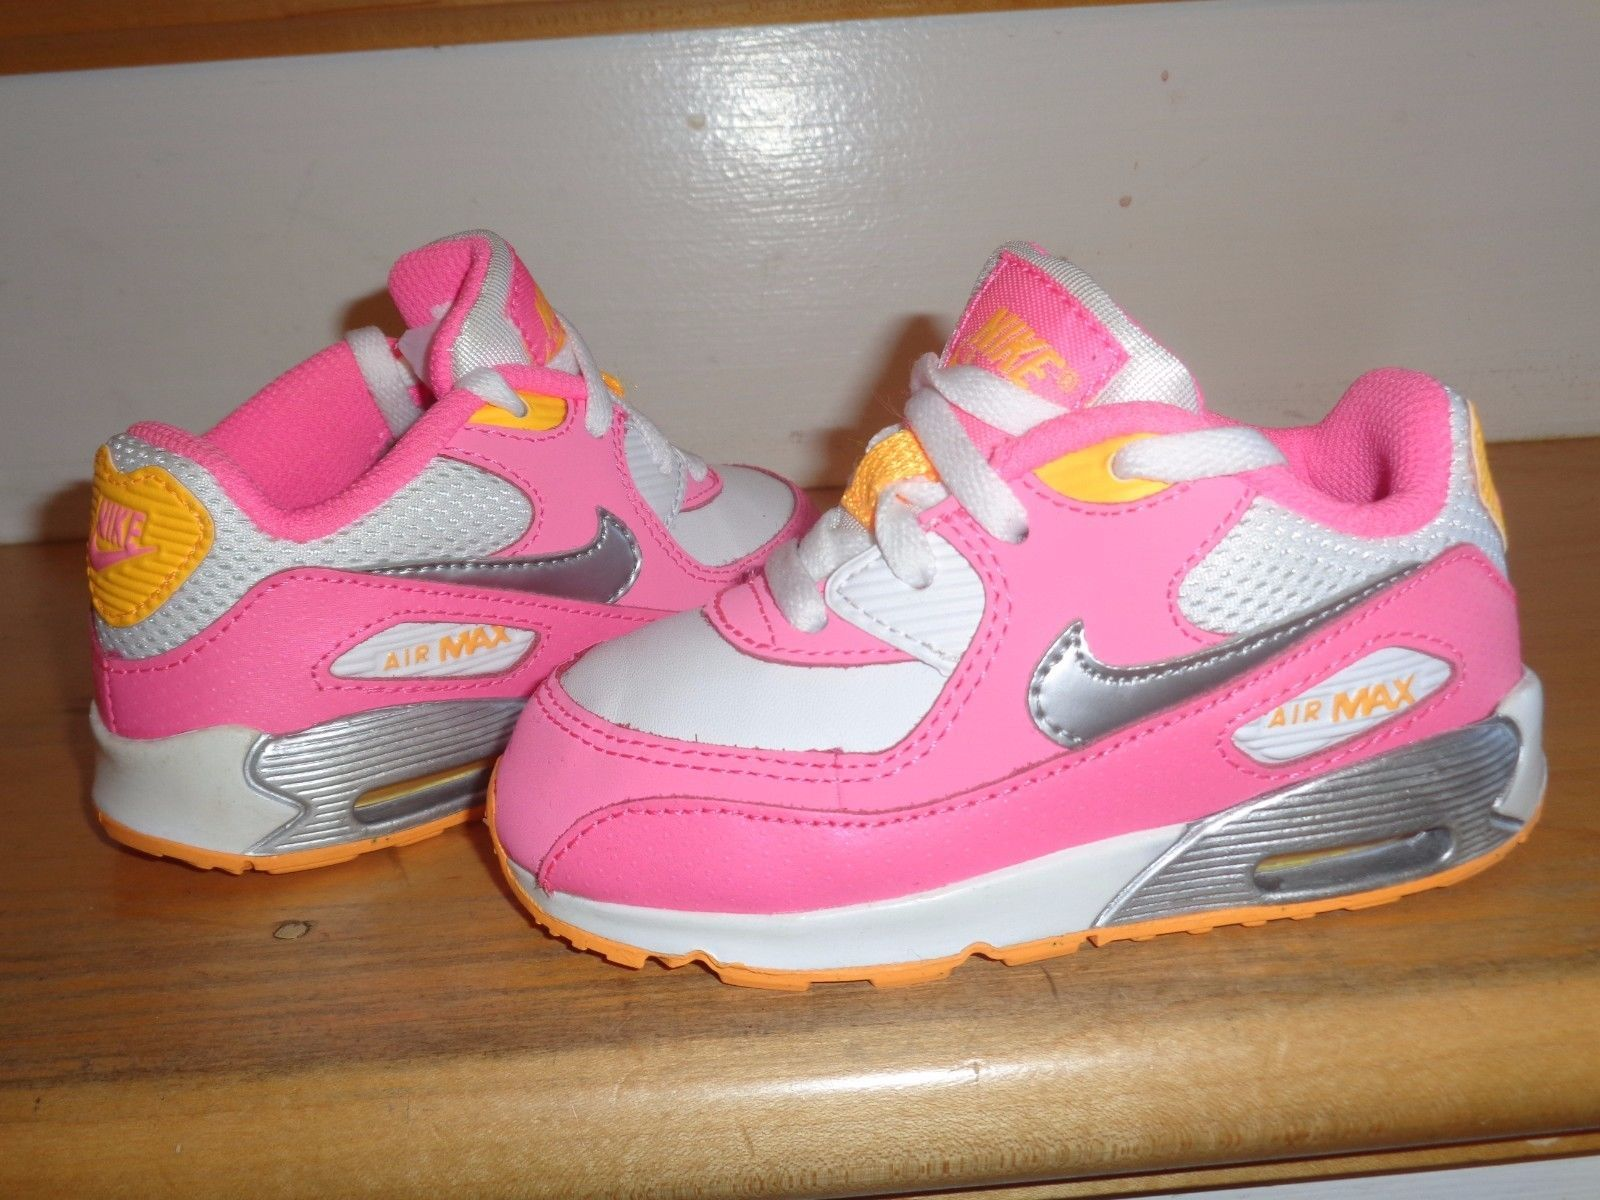 MINT NIKE AIR MAX 90 PINK-YELLOW-WHITE-SILVER 408112-120 GIRLS